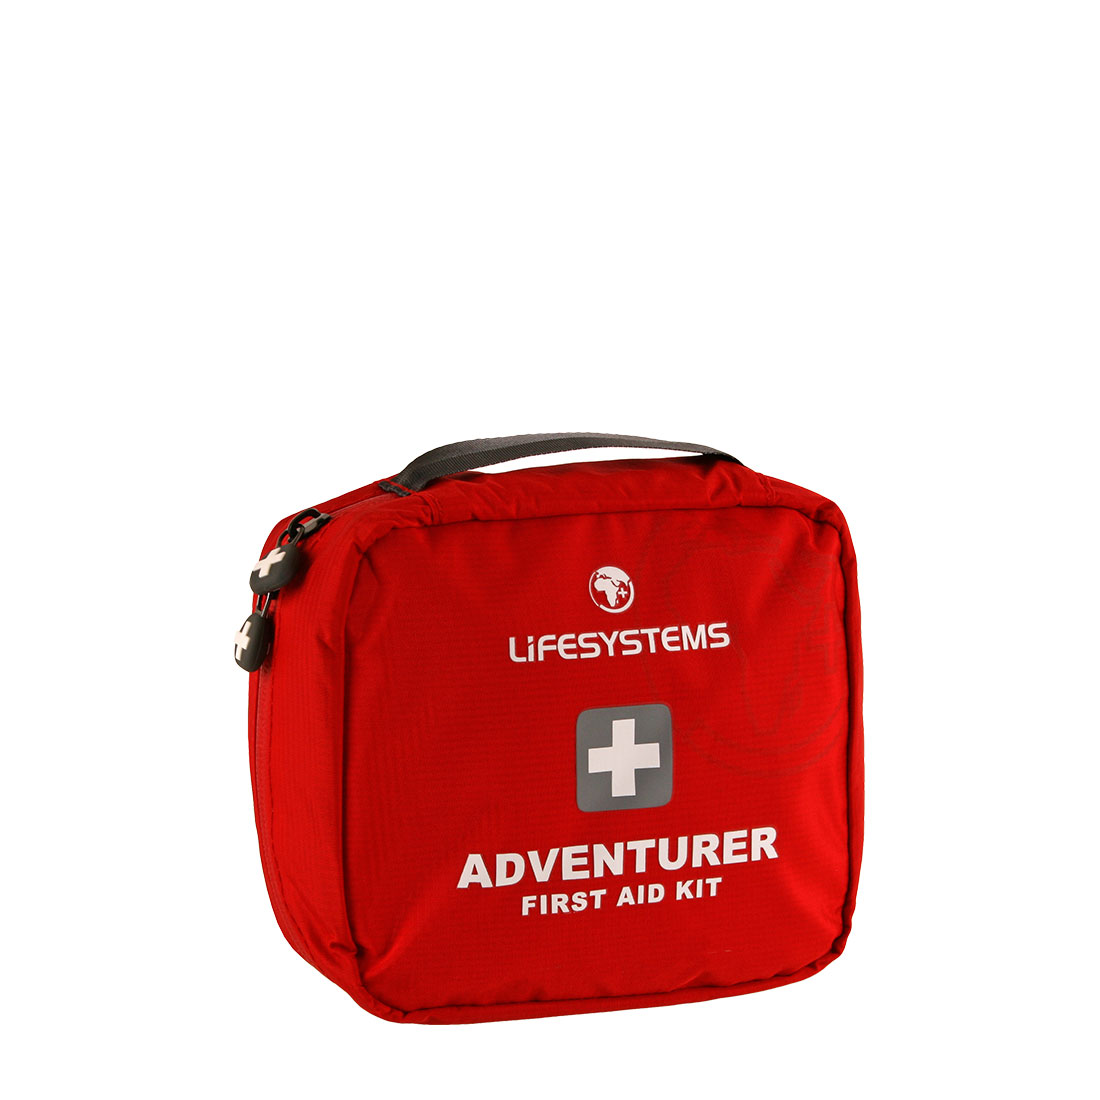 1030-adventurer-first-aid-kit-1